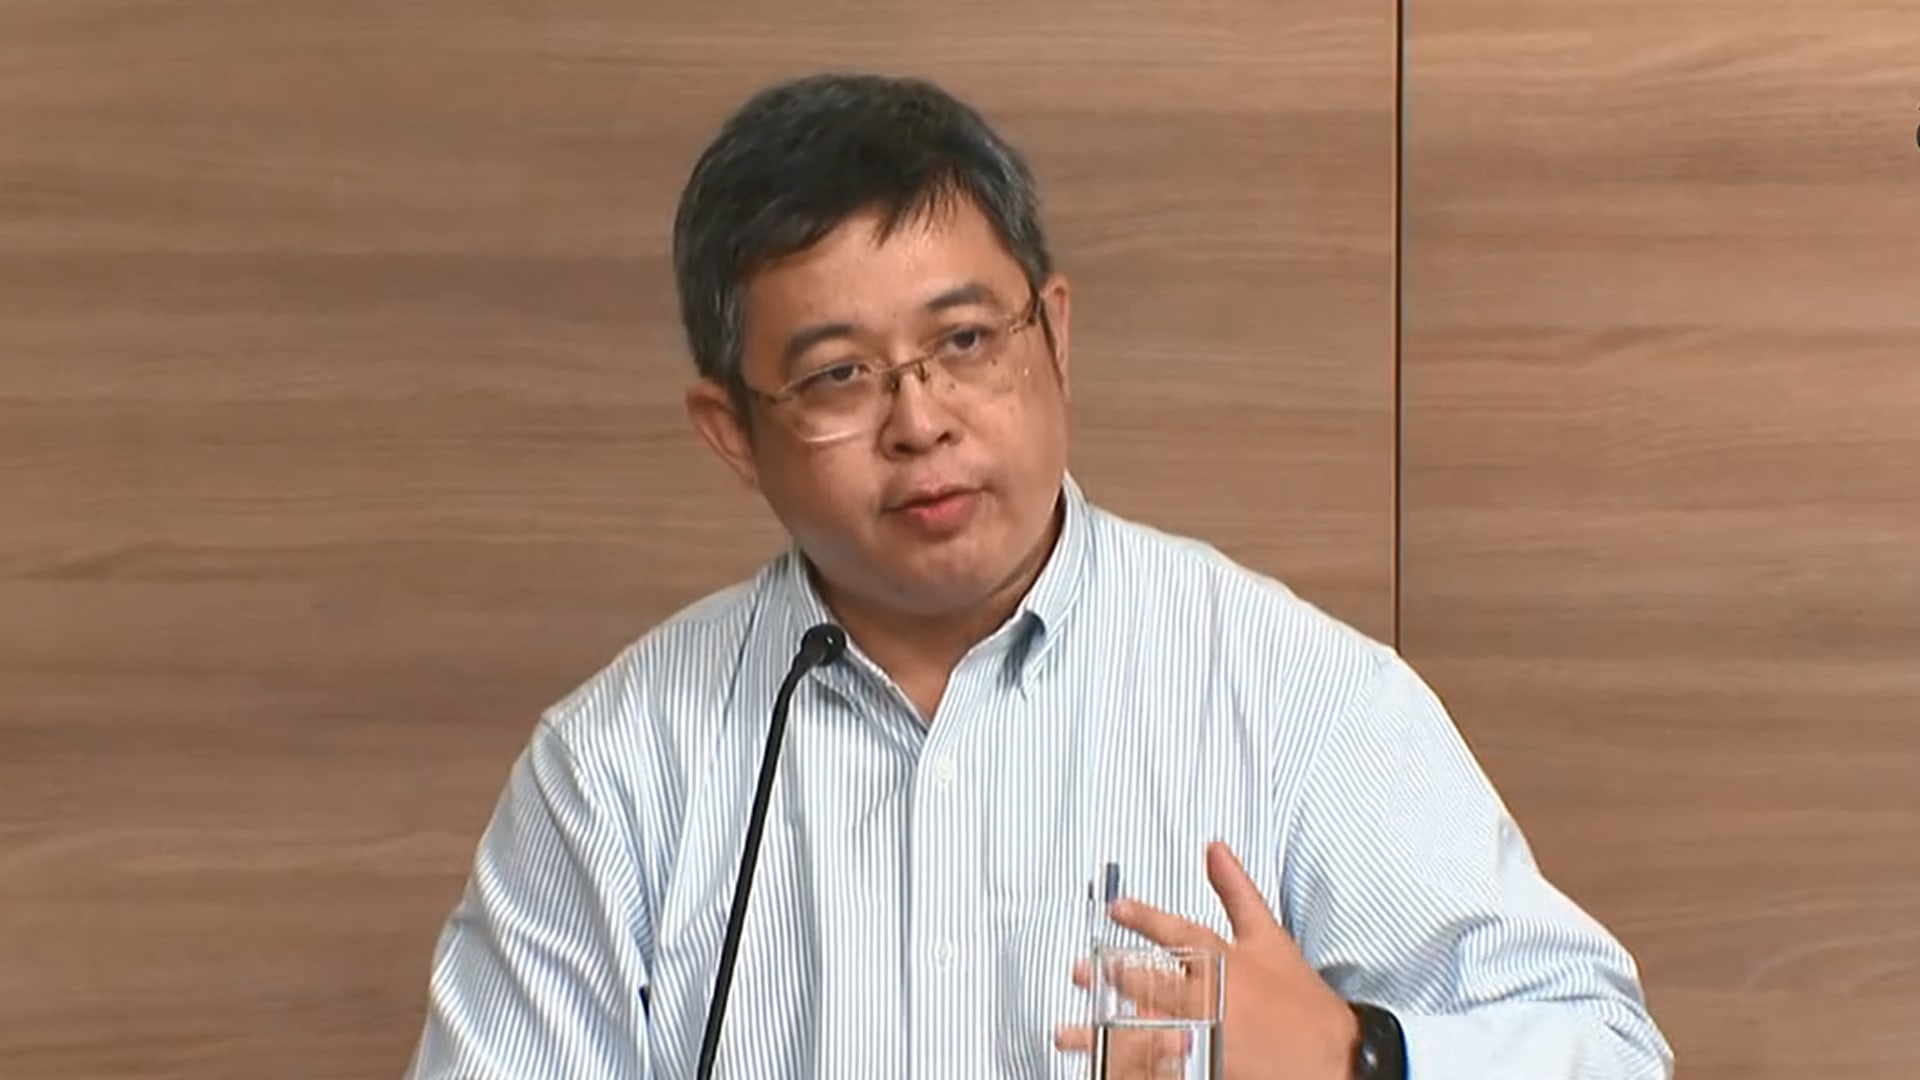 Why Singapore didn't pick up case 91's COVID19 infection earlier